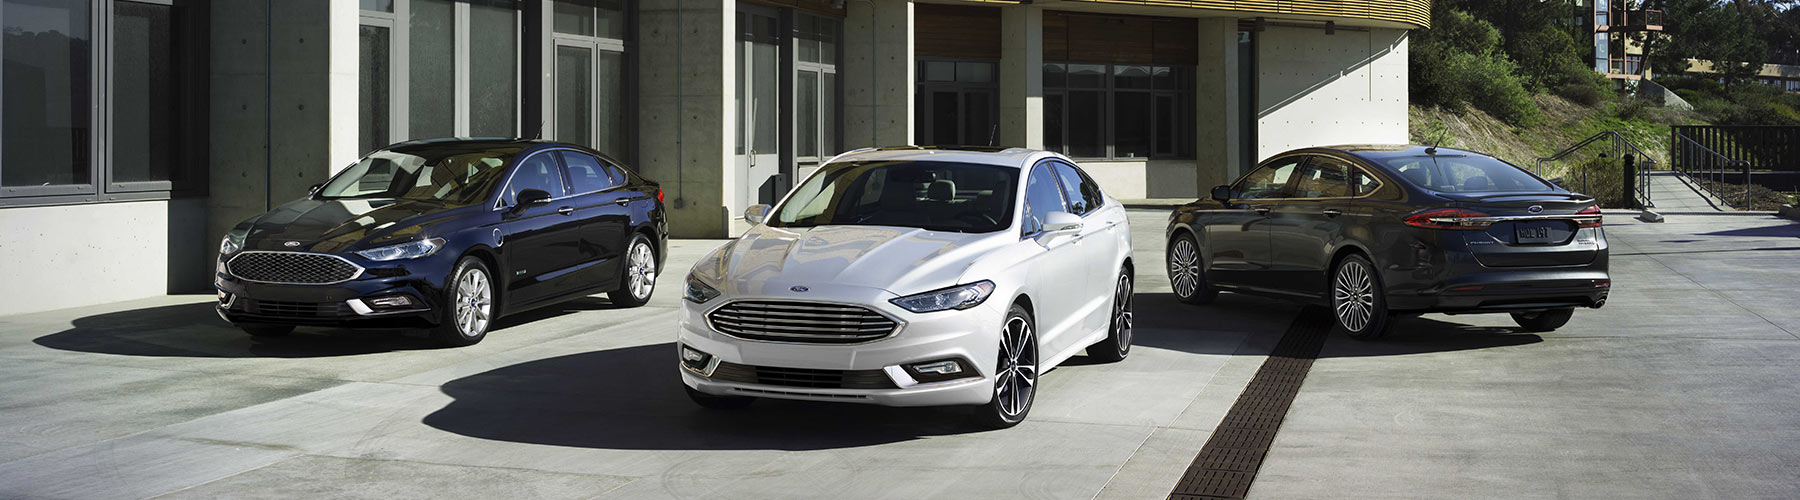 Discovery-Ford-Fusion